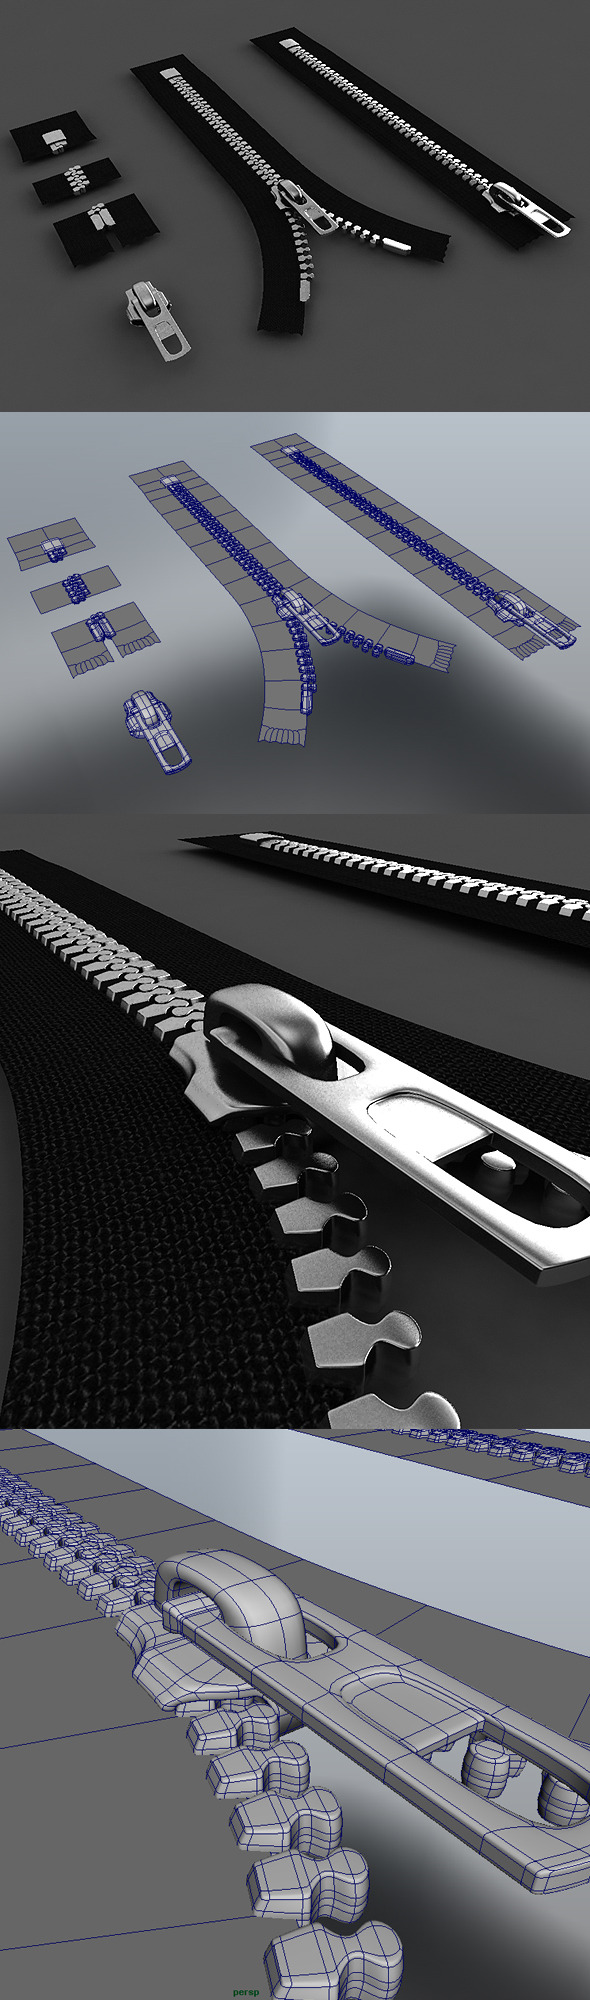 Zipper Construction Kit